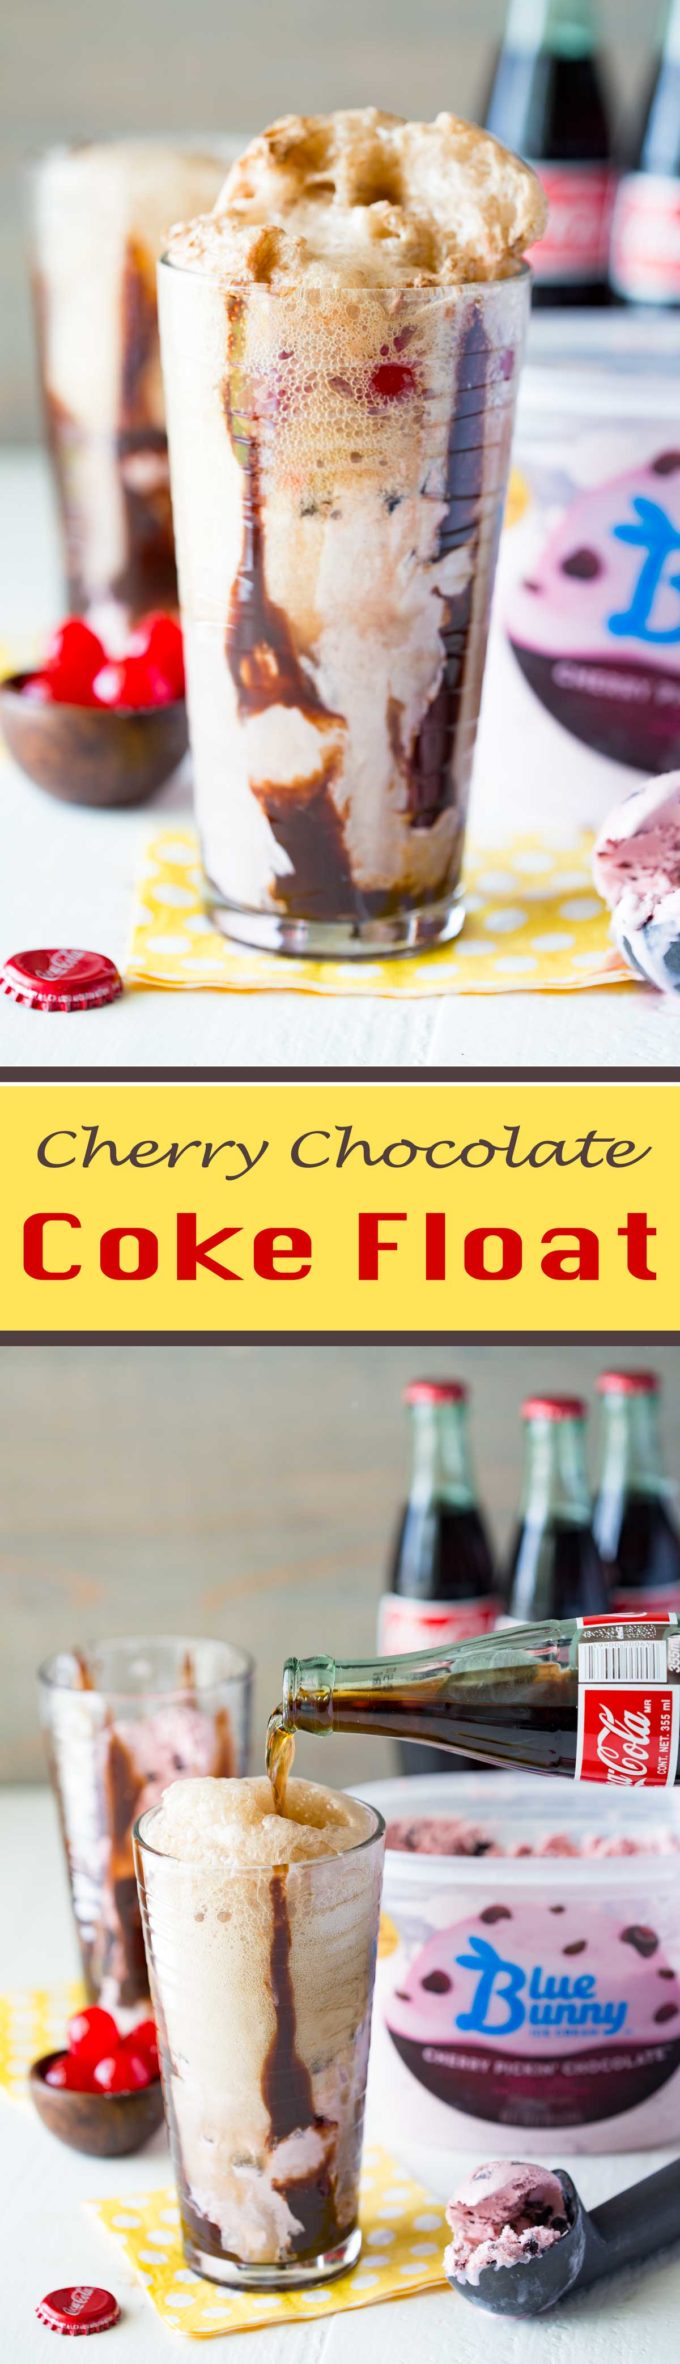 Cherry Chocolate Coke Float is a flavorful ice cream float!